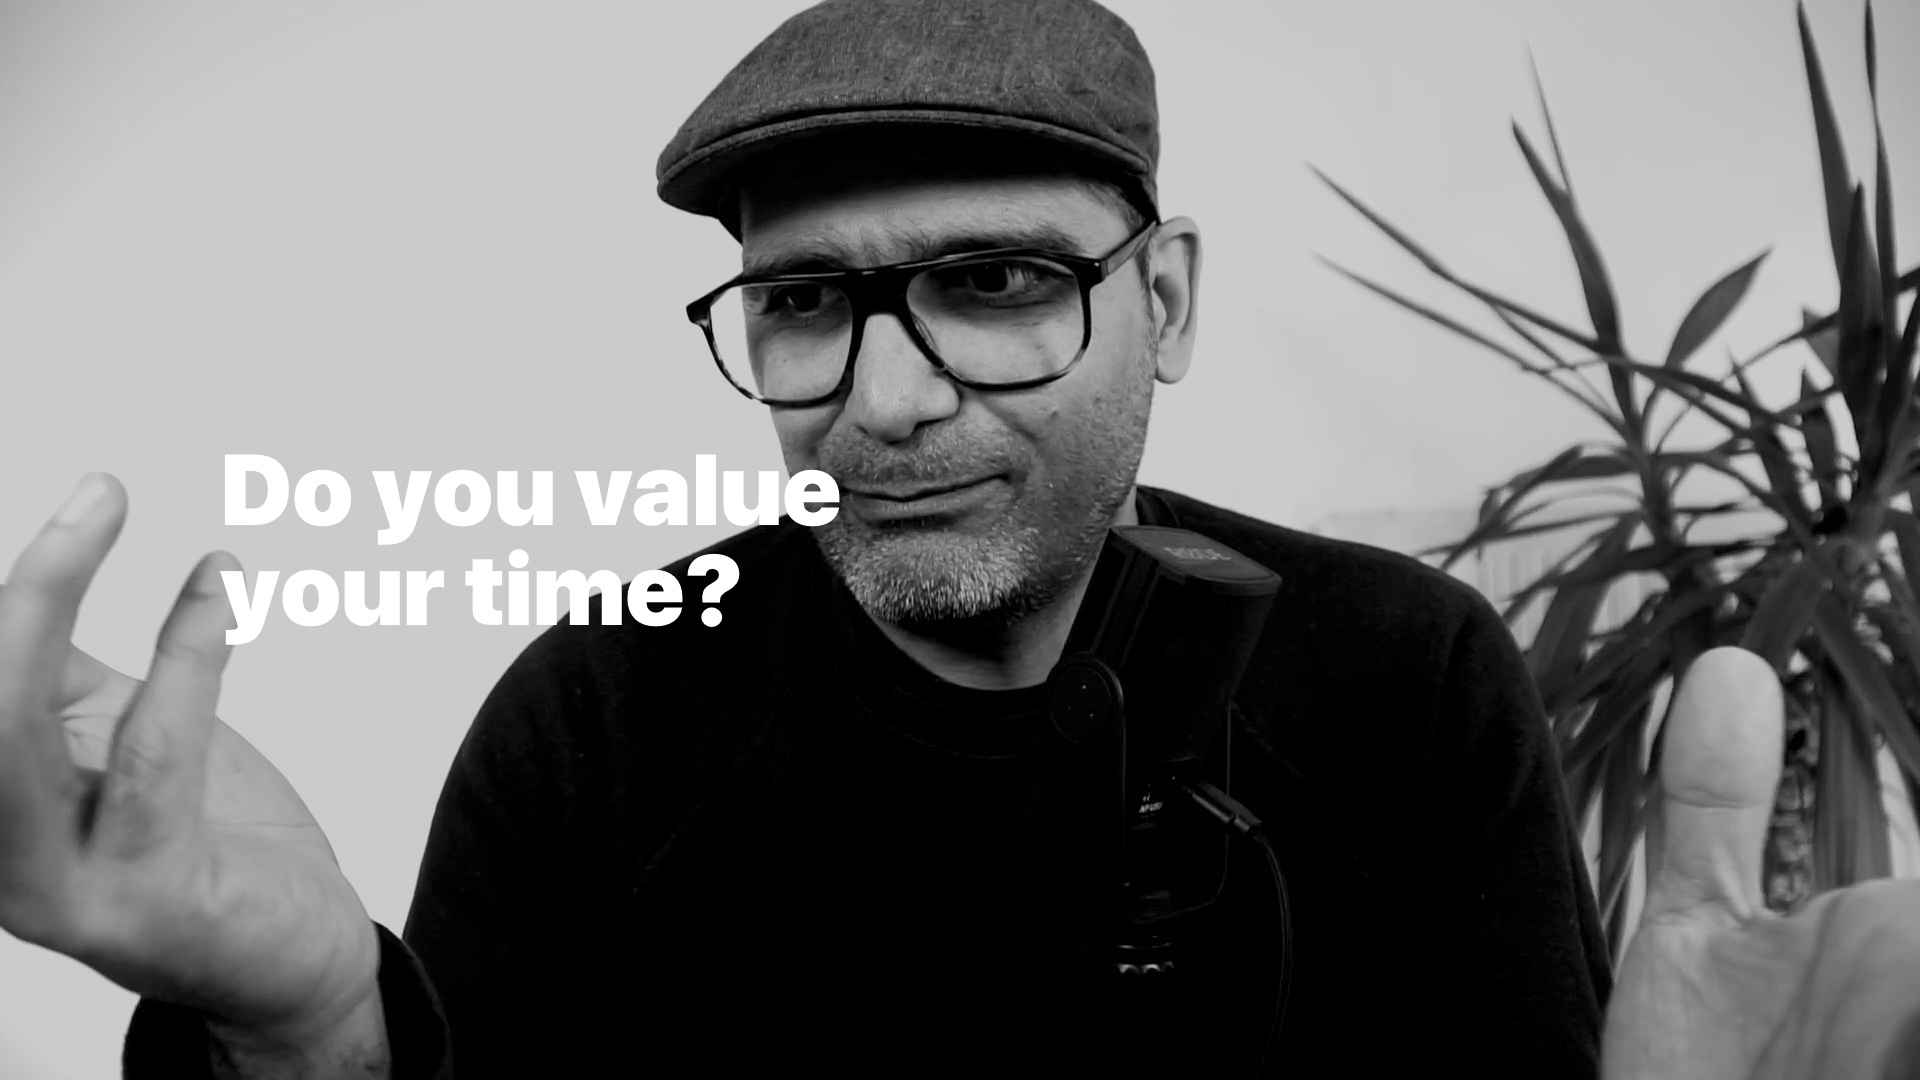 Do you value your time?